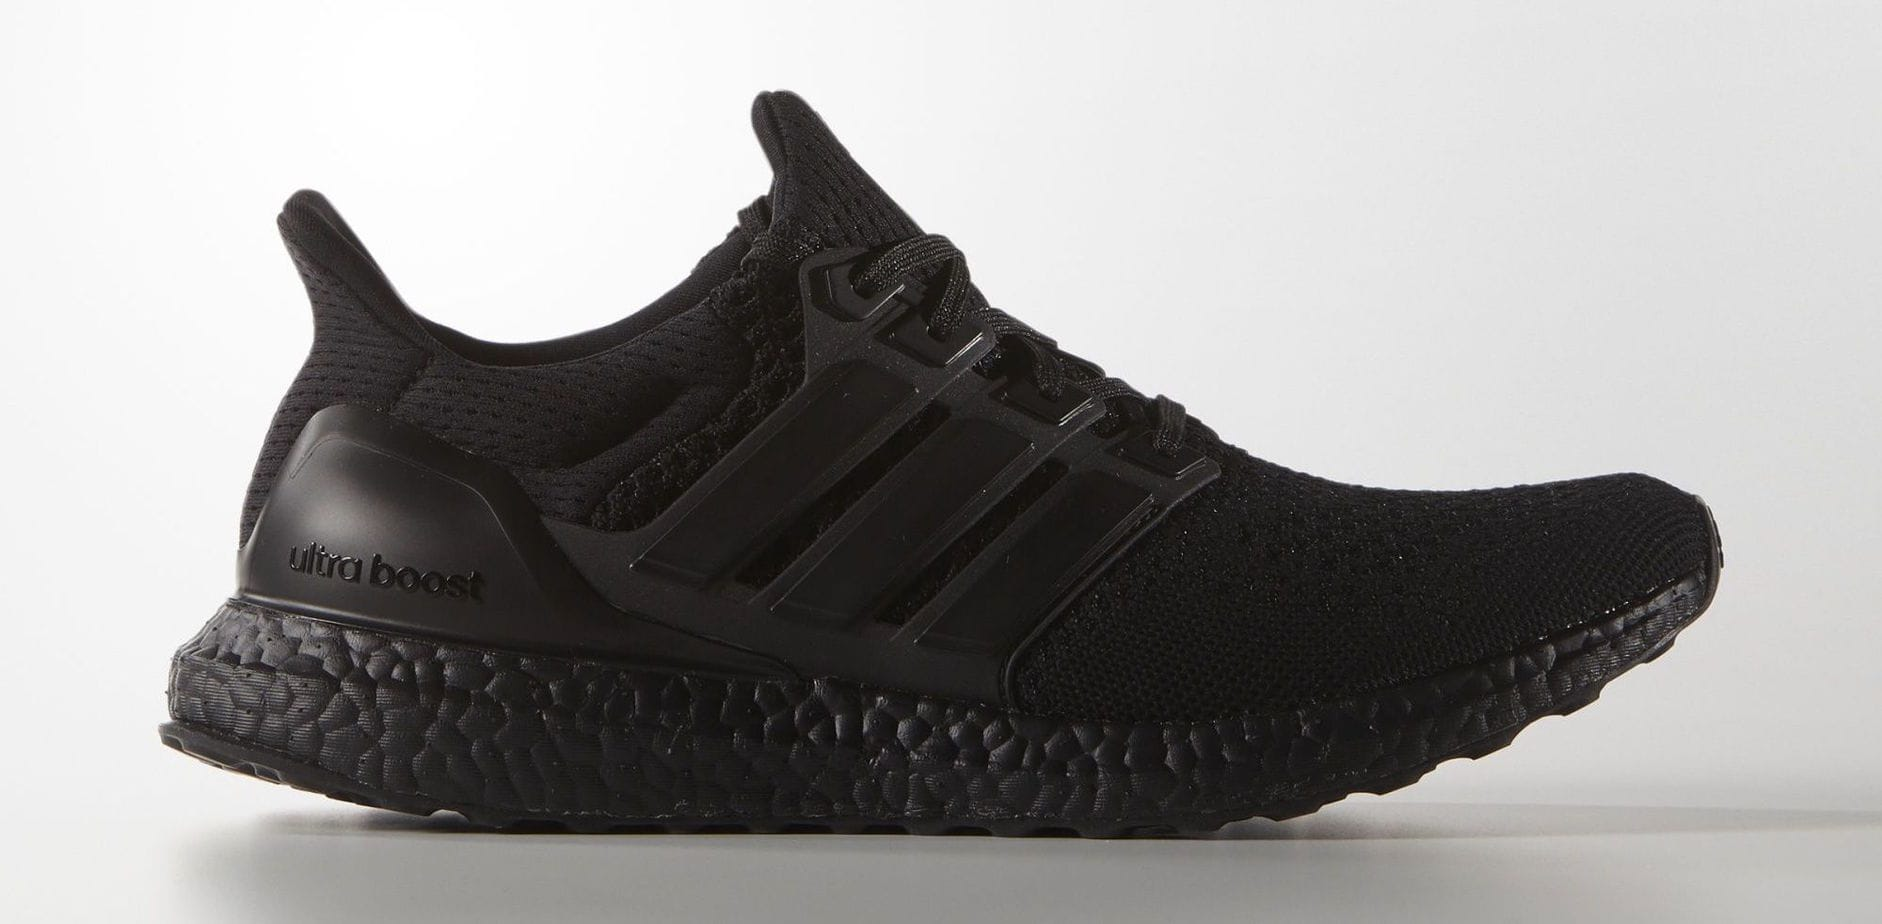 980270090cab4 ... promo code for adidas ultra boost yeezy 350 boost grey b68d2 e18f7